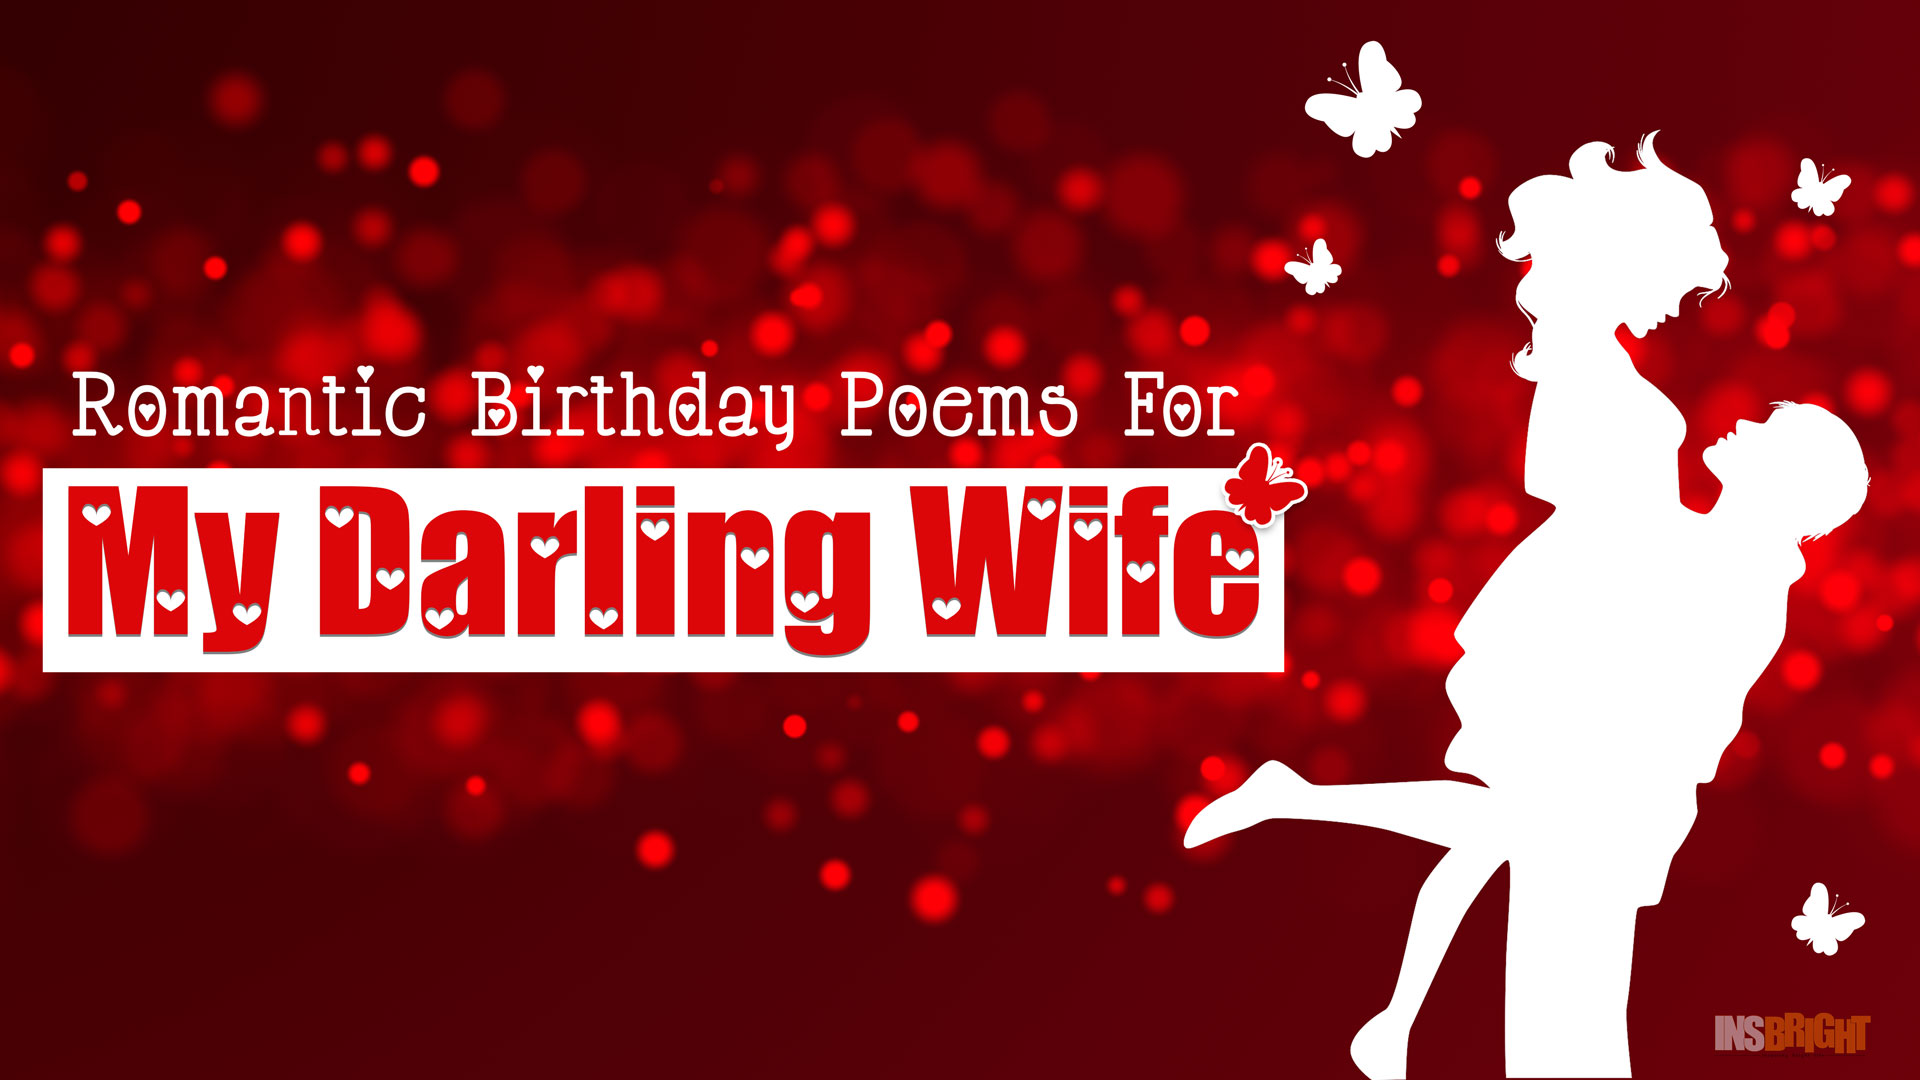 10 romantic happy birthday poems for wife with love from husband short birthday poems for her insbright